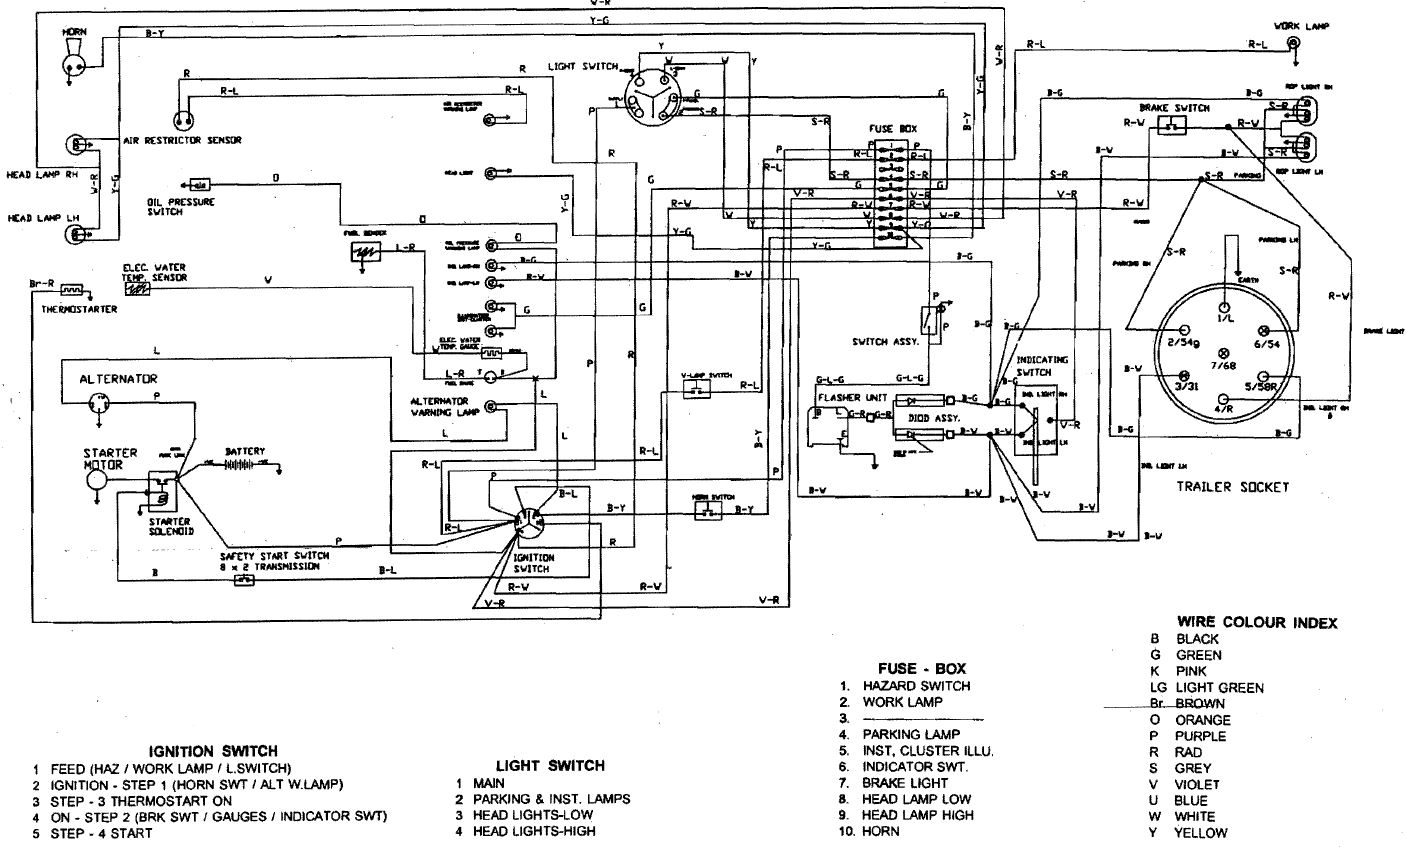 21 Awesome Indak Switch Wiring Diagram on